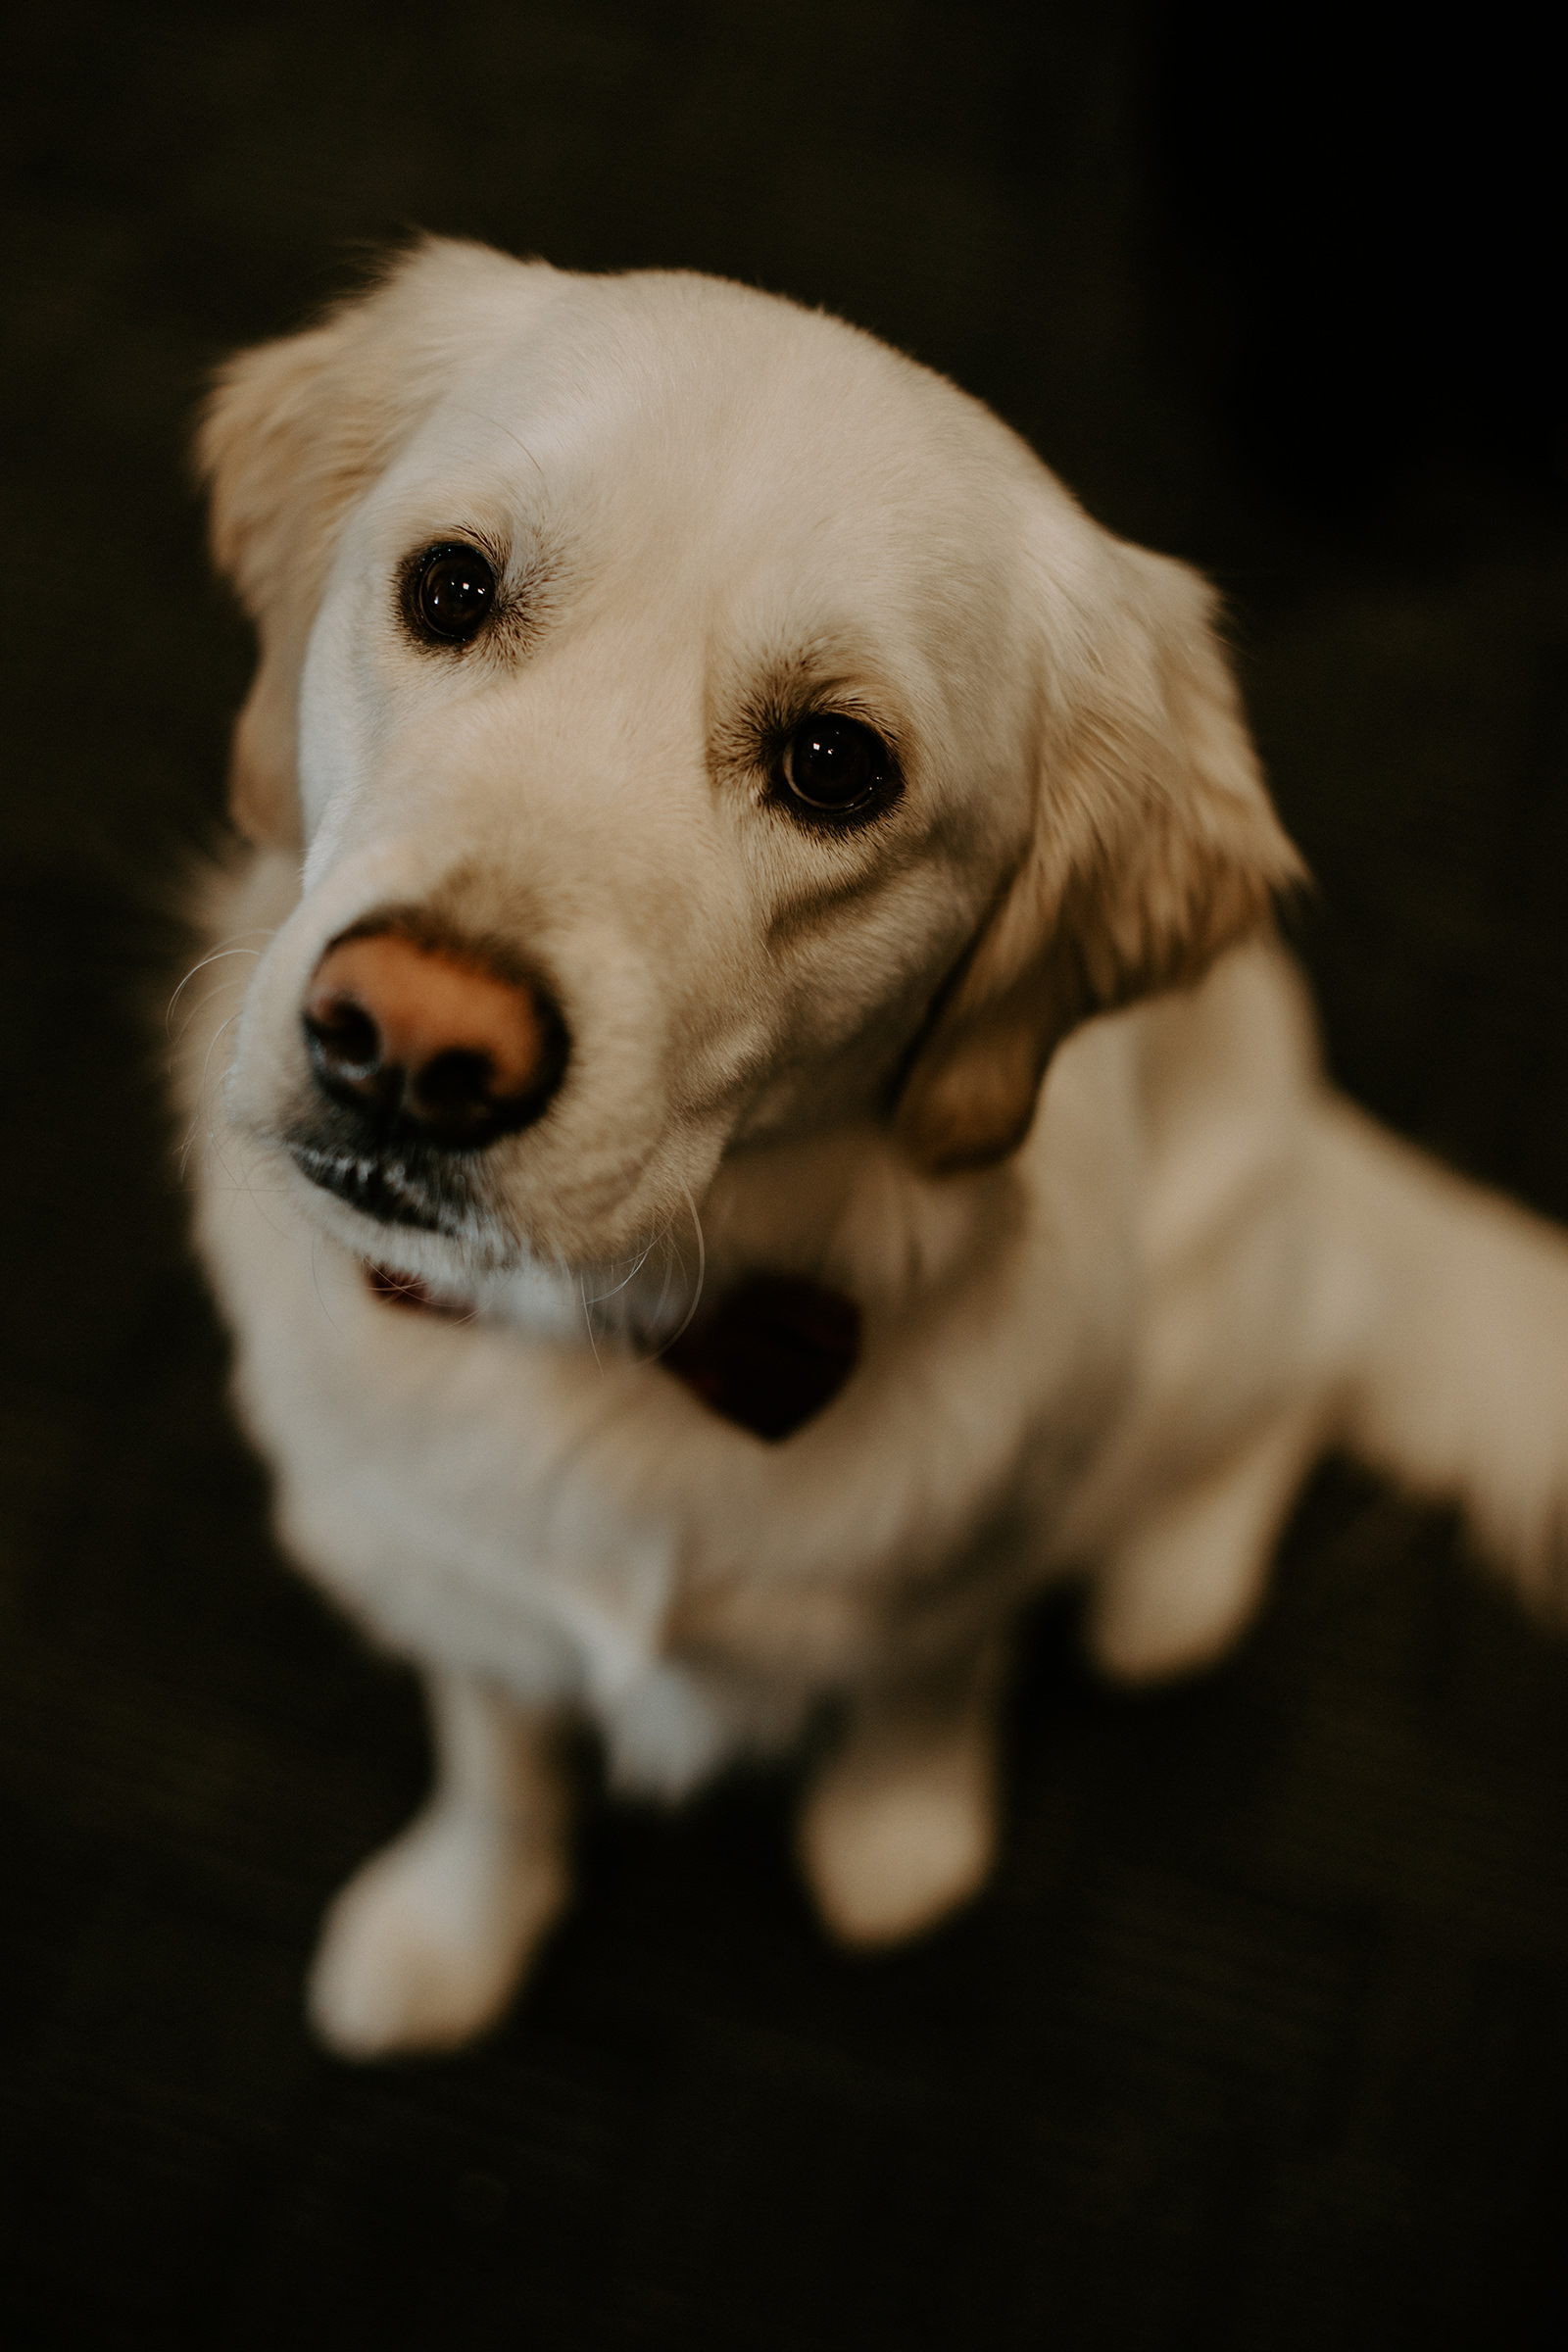 Portrait of White golden retriever looking up at camera